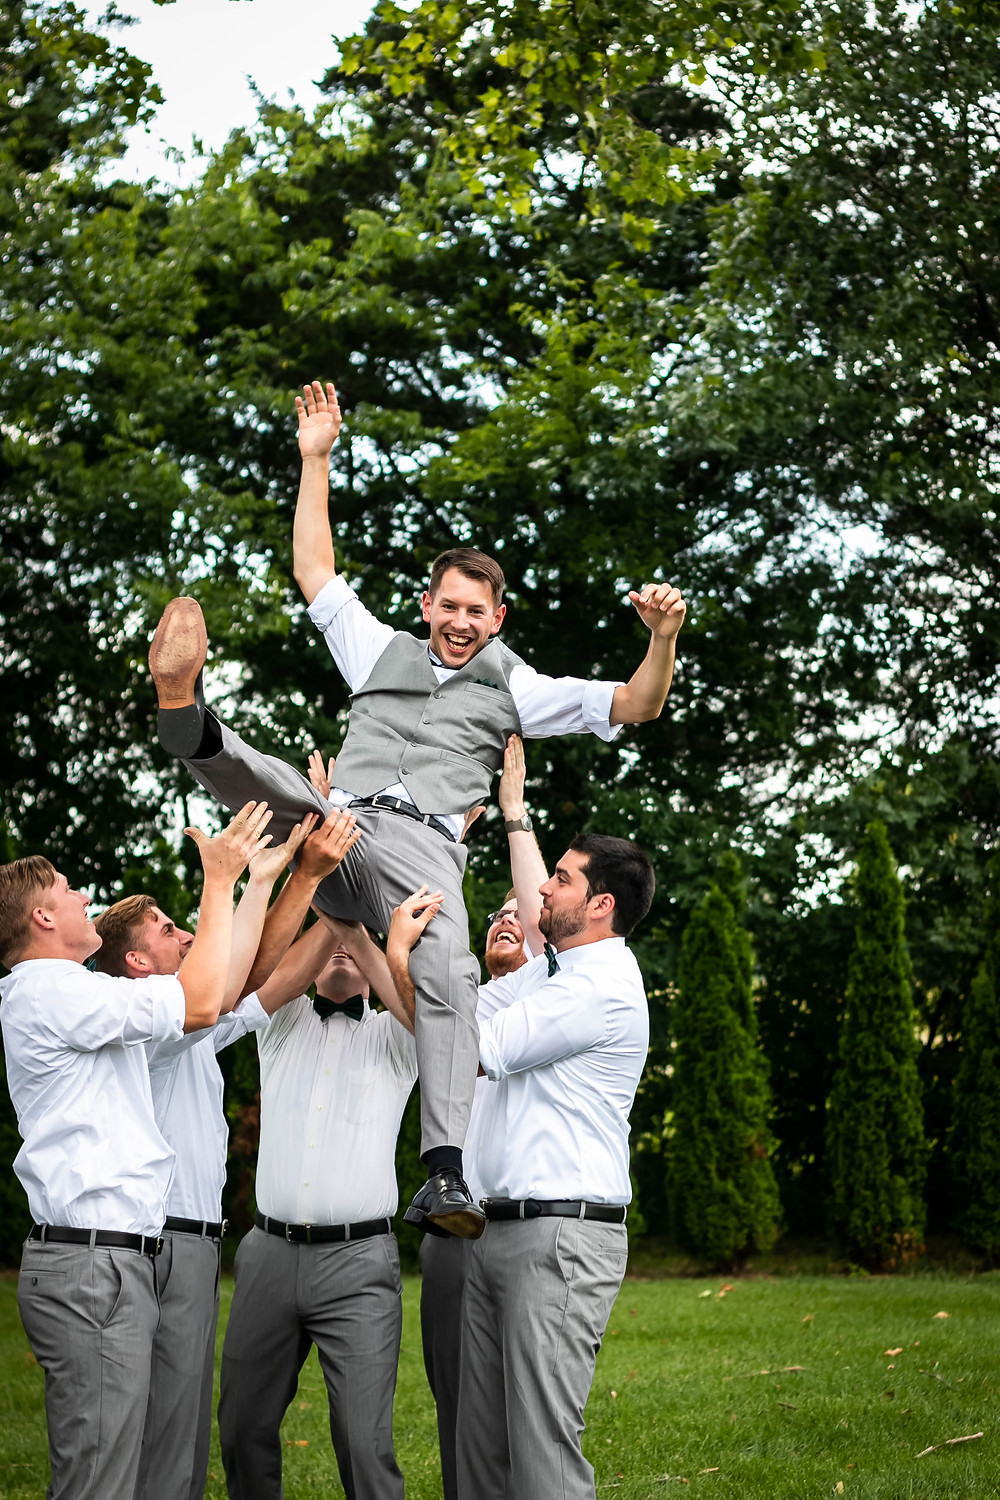 Groom being tossed in the air by groomsmen at Sycamore Farm